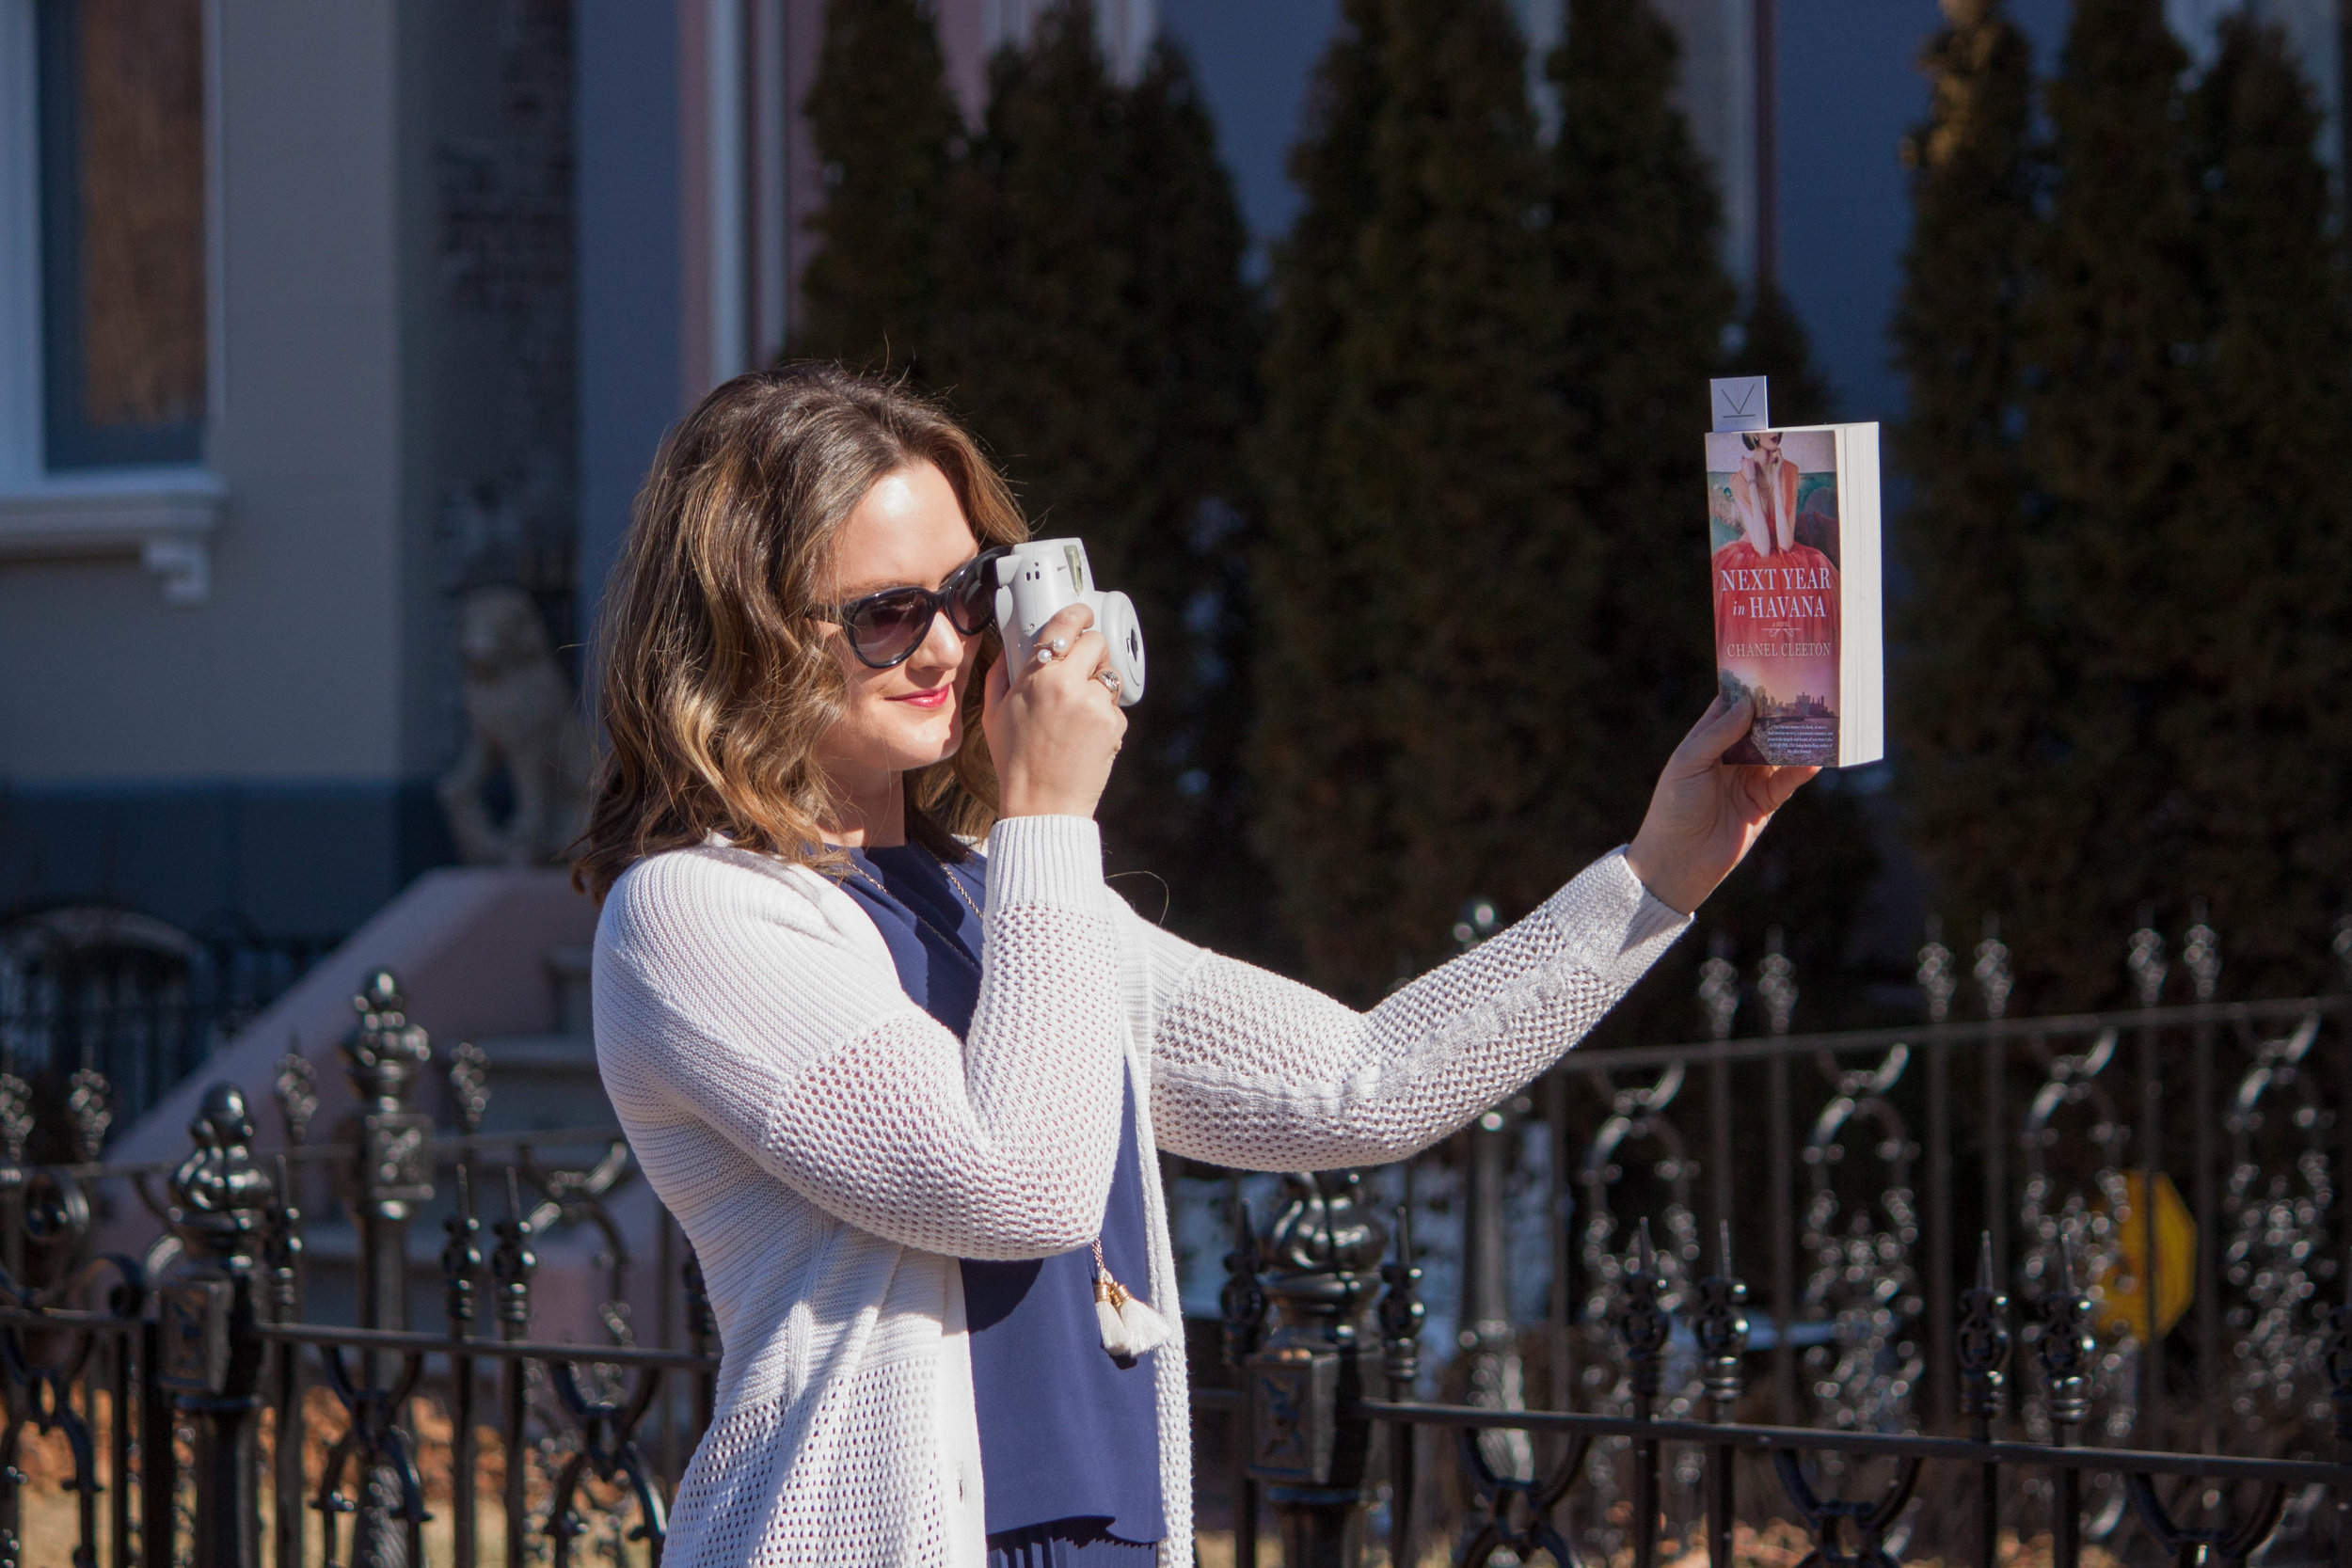 Reading Next Year in Havana by Chanel Cleeton in Lafayette Square in St. Louis, MO